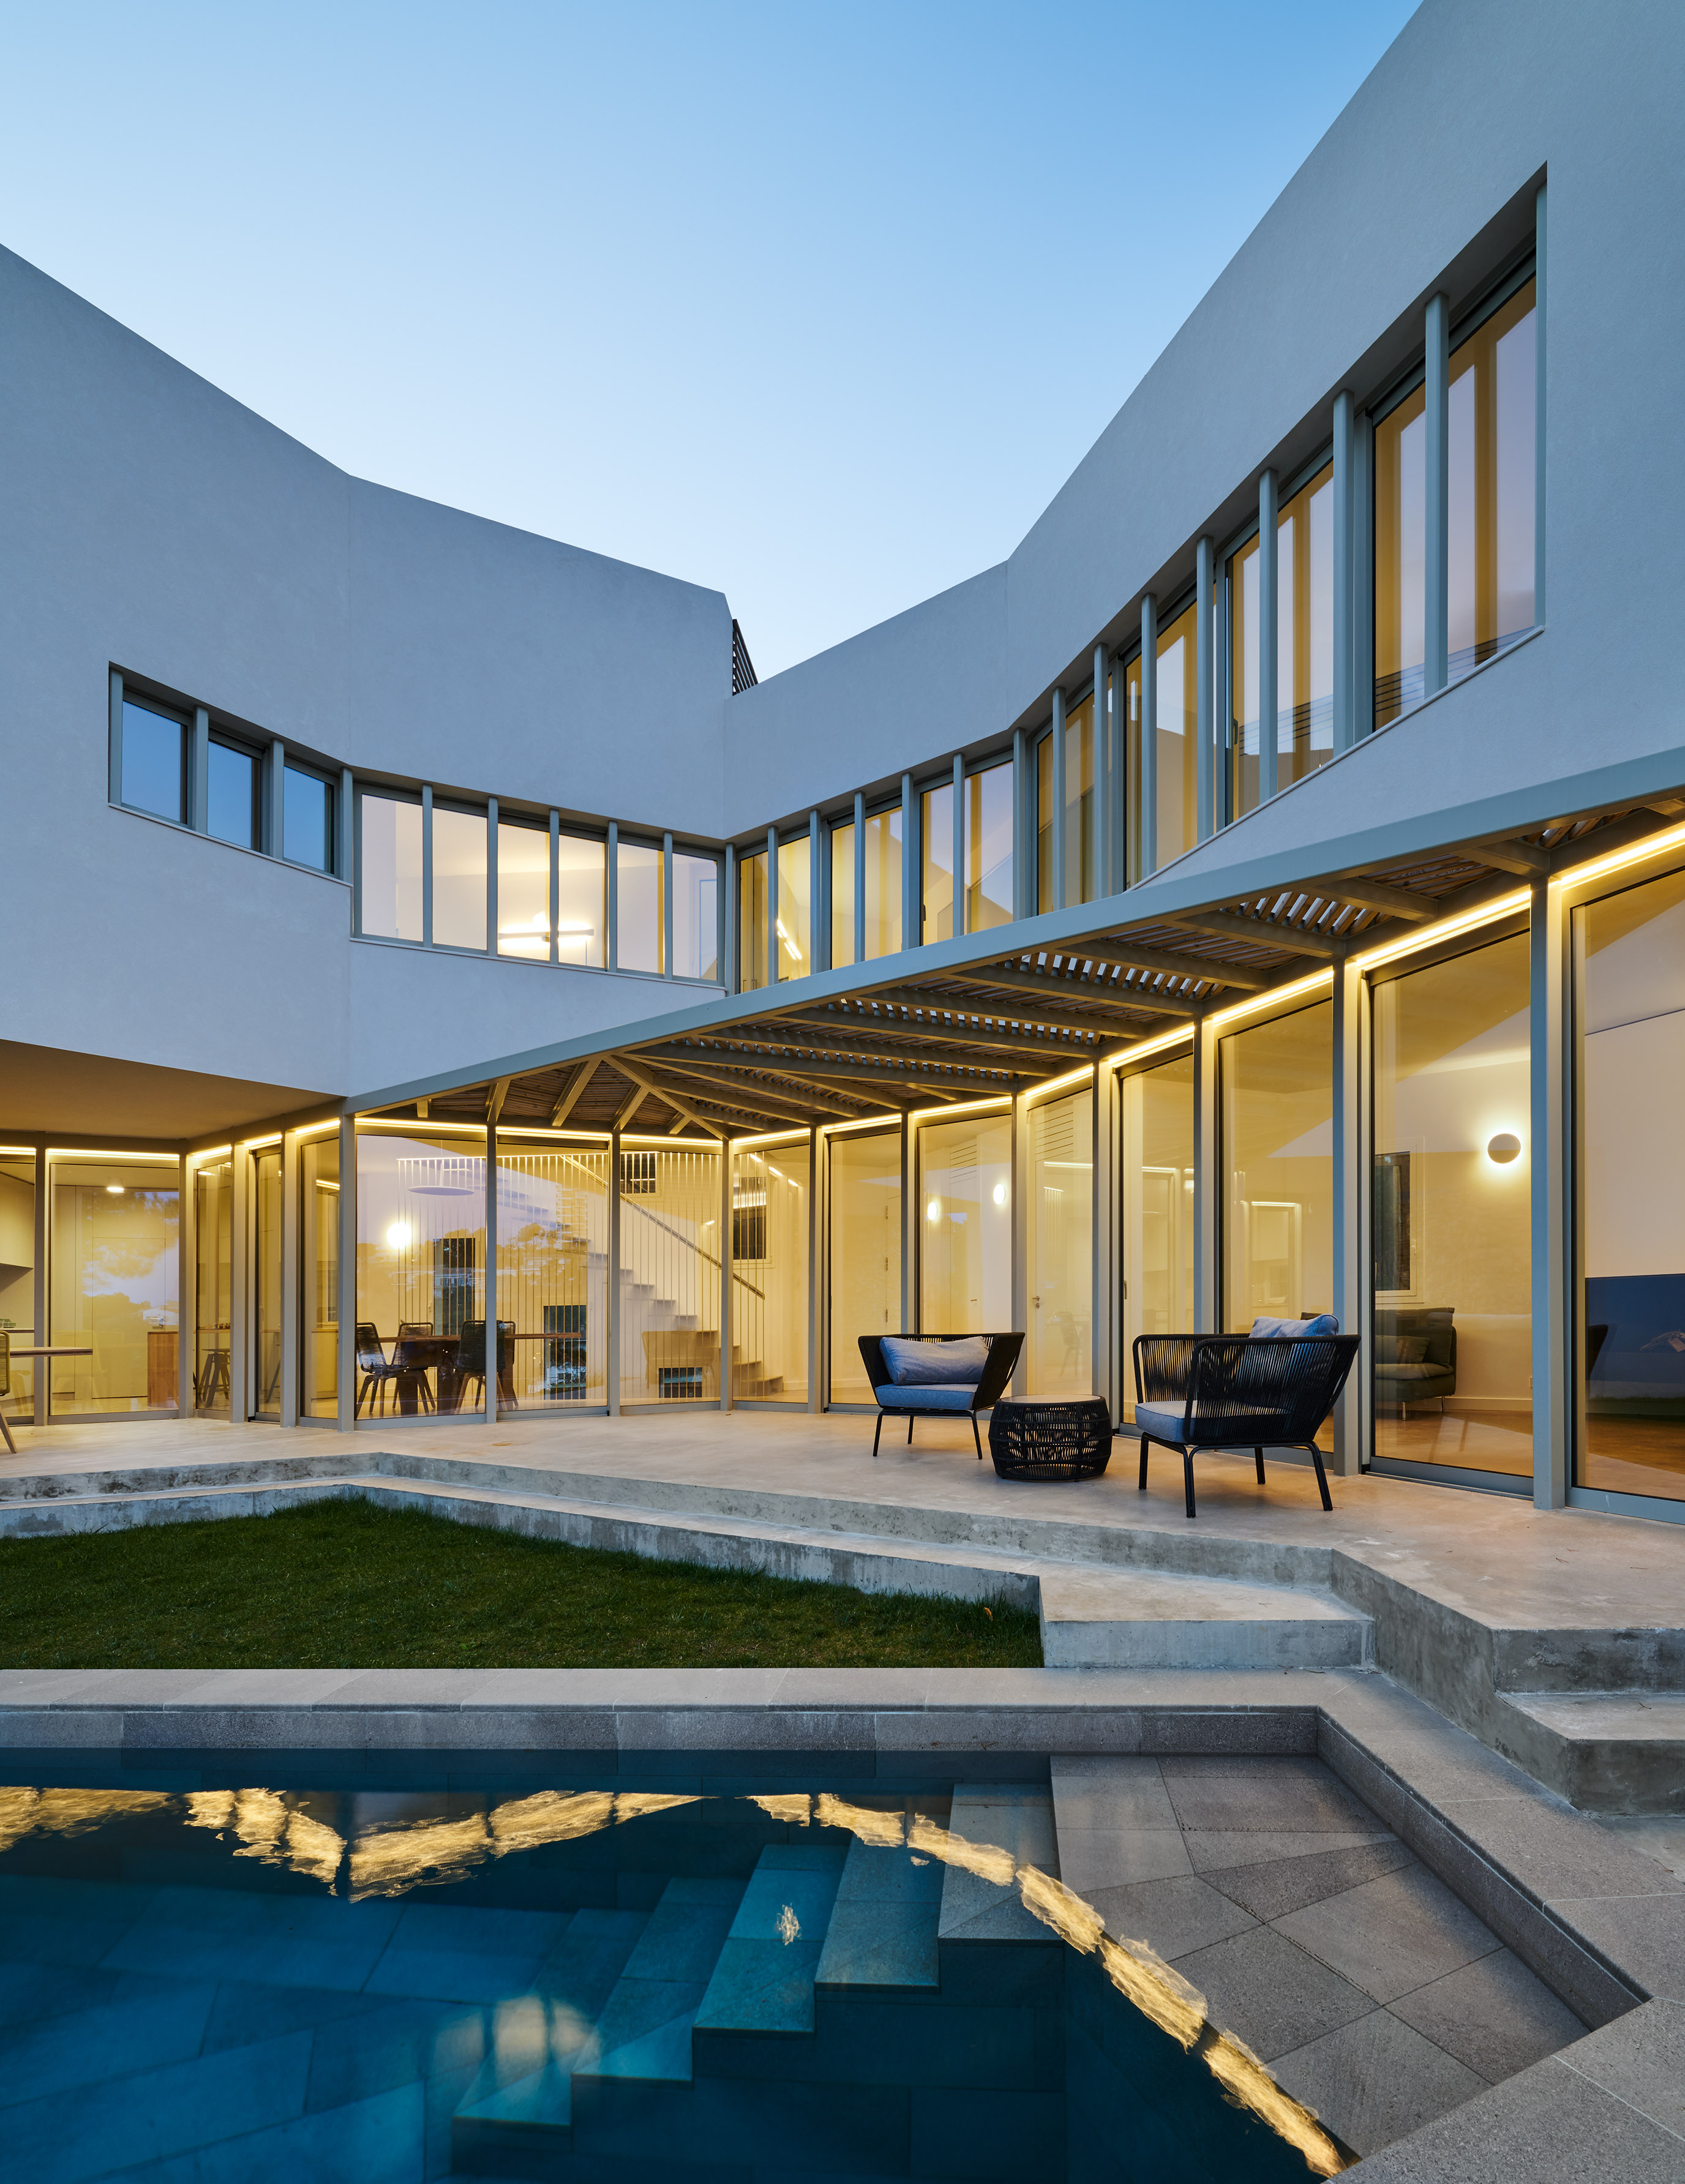 House in Urcasa by Eugeni Pons